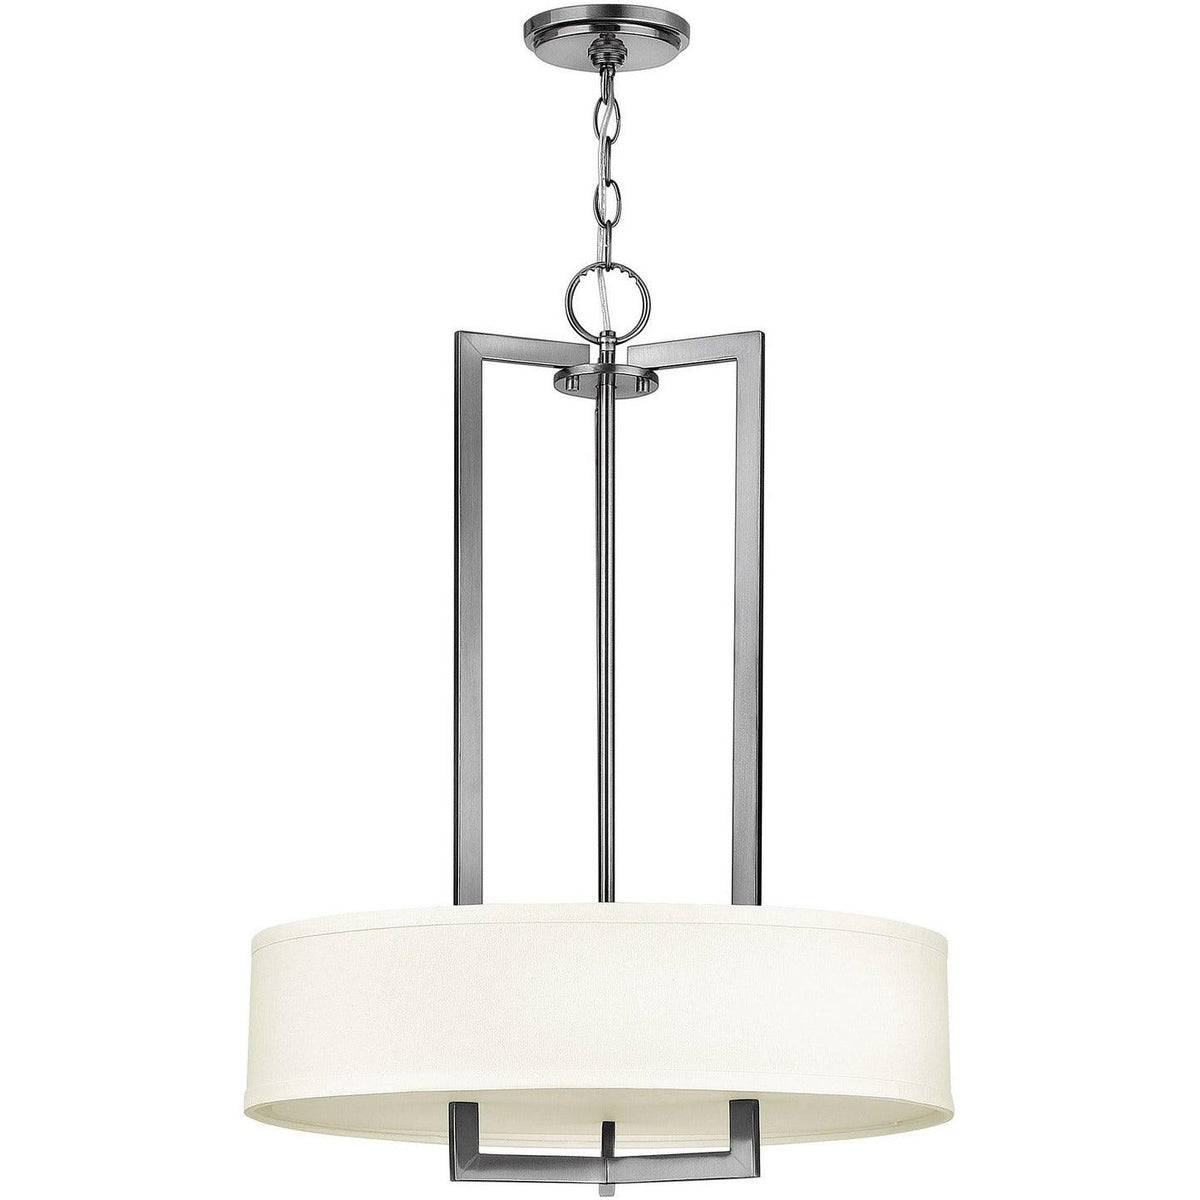 Hinkley Canada - 3203AN-LED - LED Pendant - Hampton - Antique Nickel